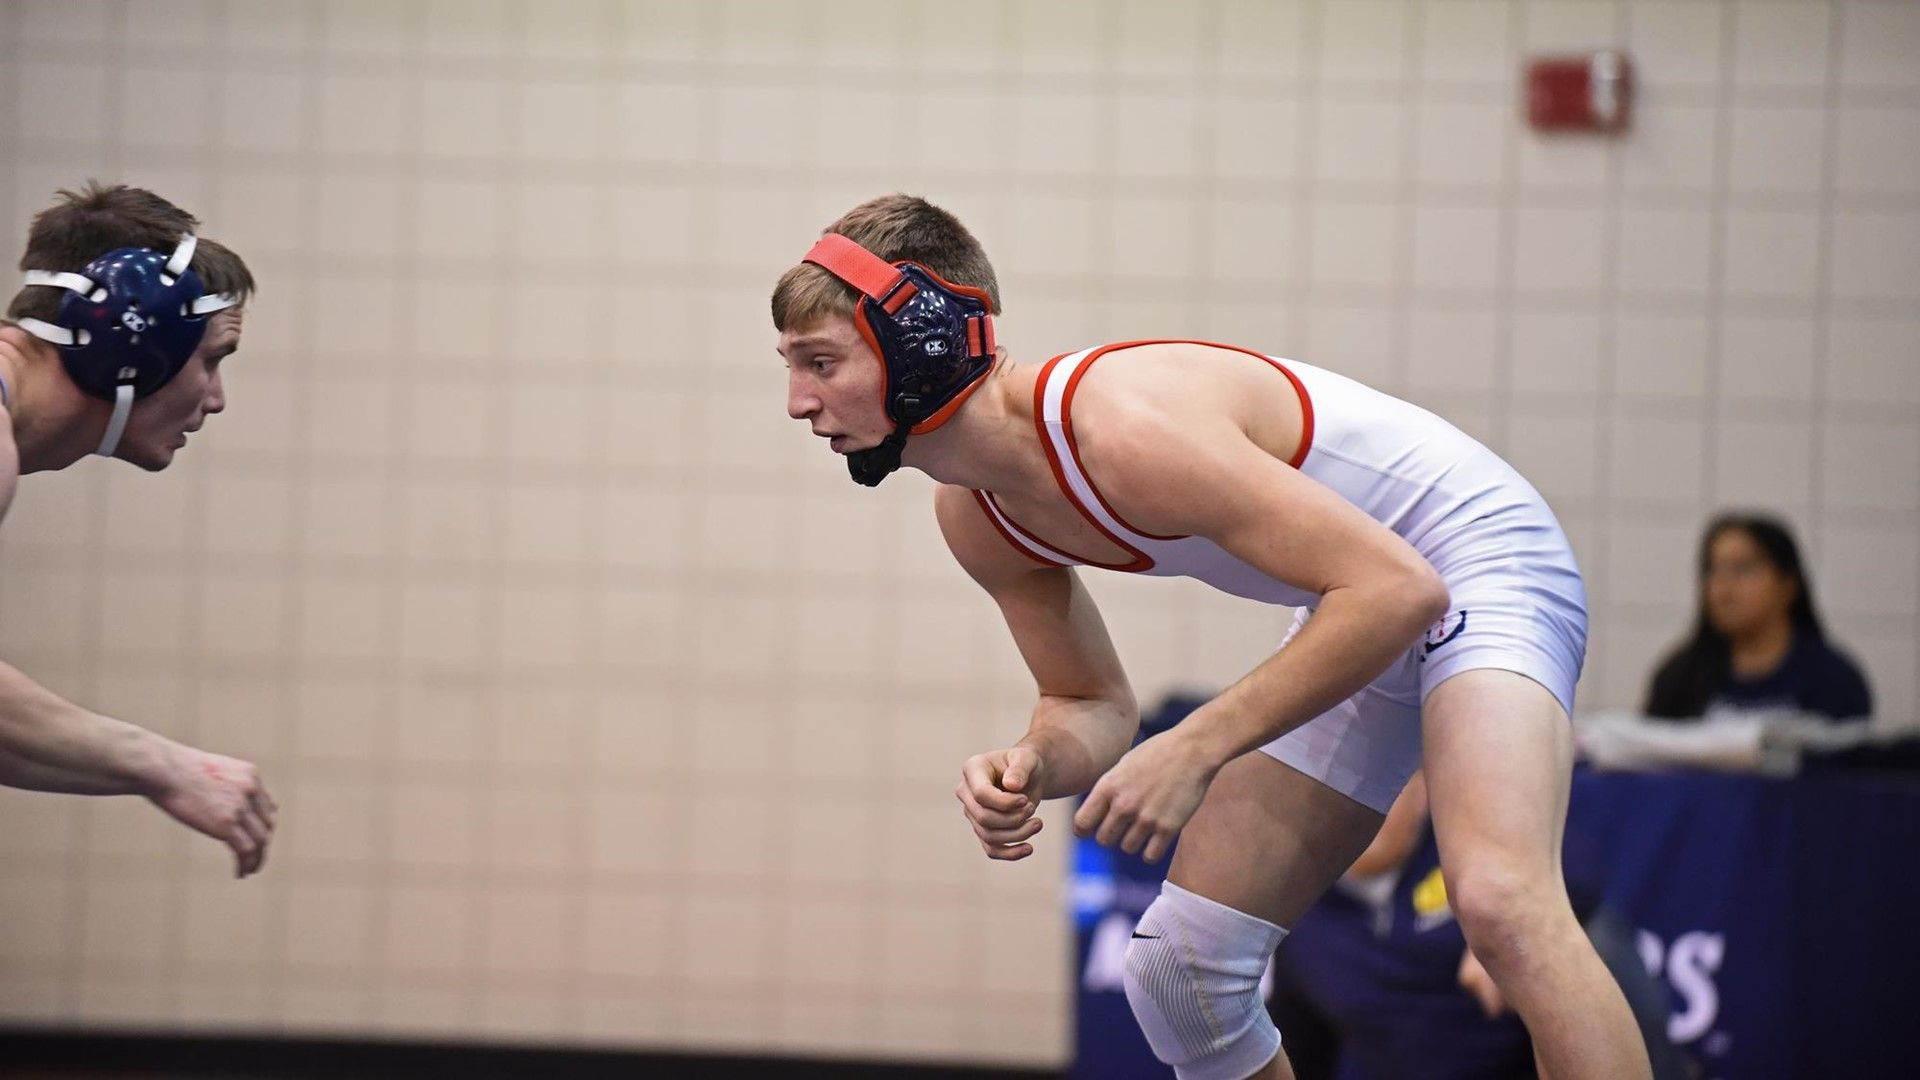 Wrestlers focus on fitness to prepare for the season